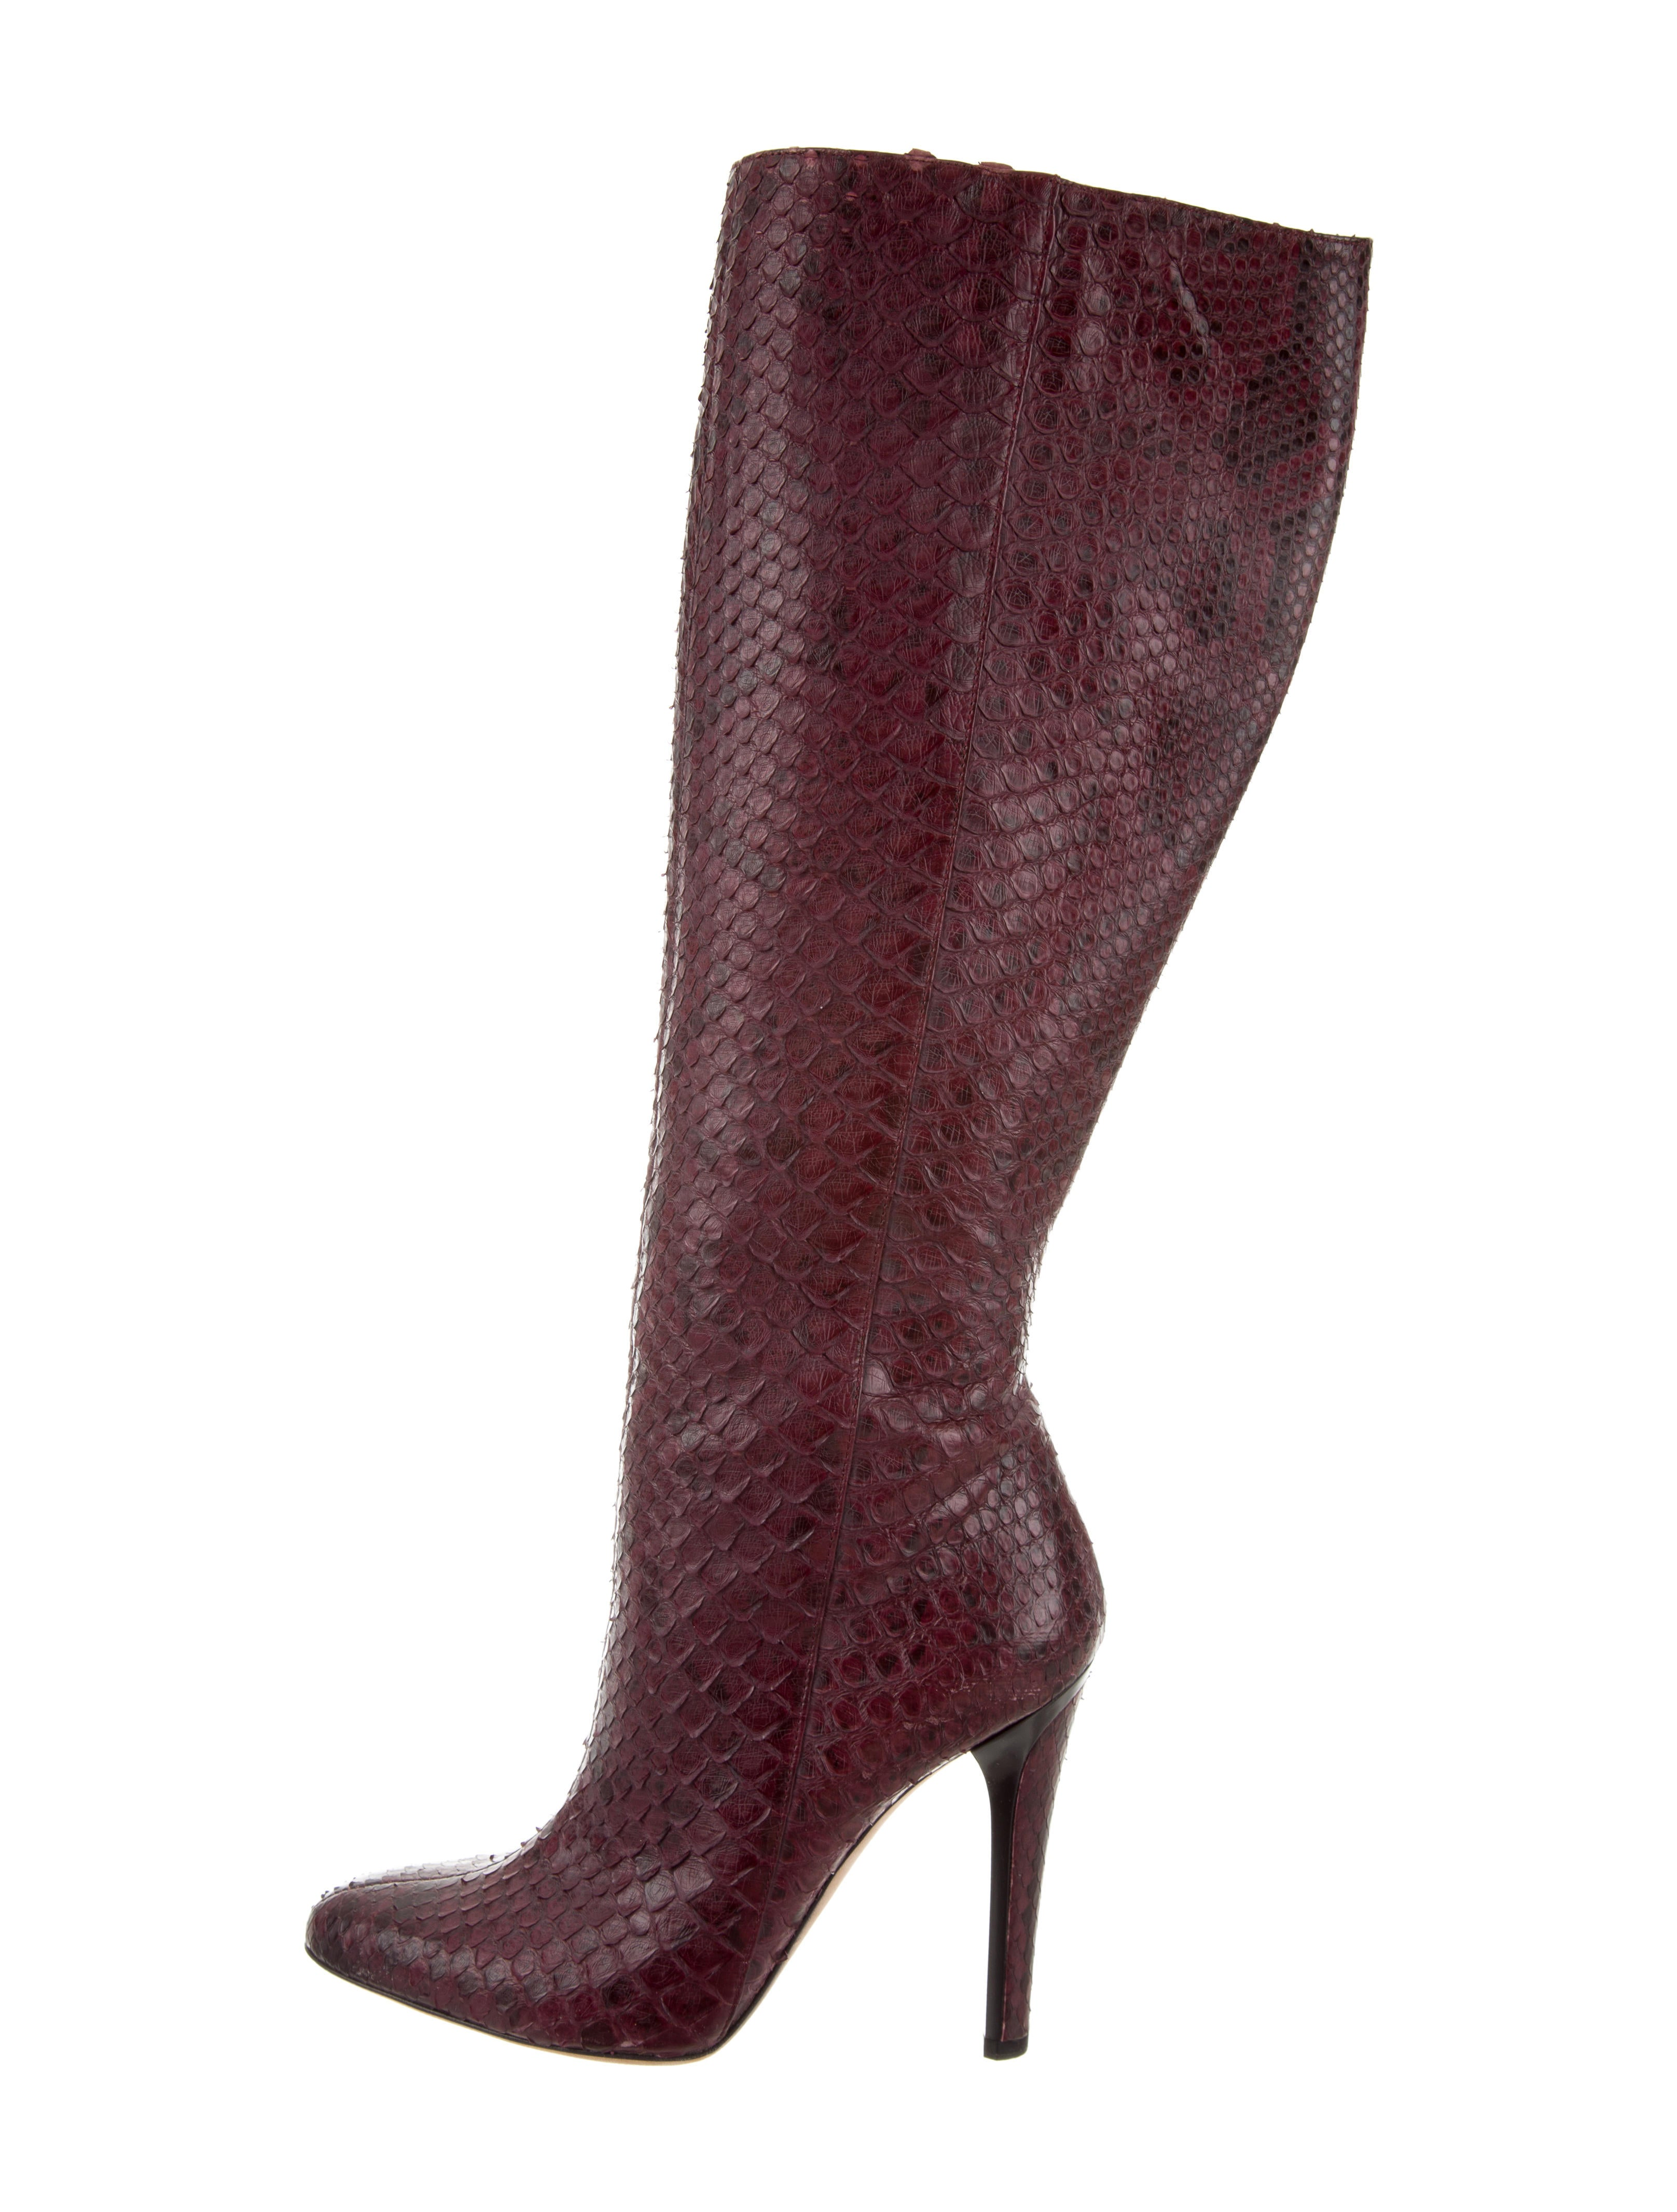 cheapest price cheap online Jimmy Choo Python Knee-High Boots countdown package cheap price CdGKRTk5